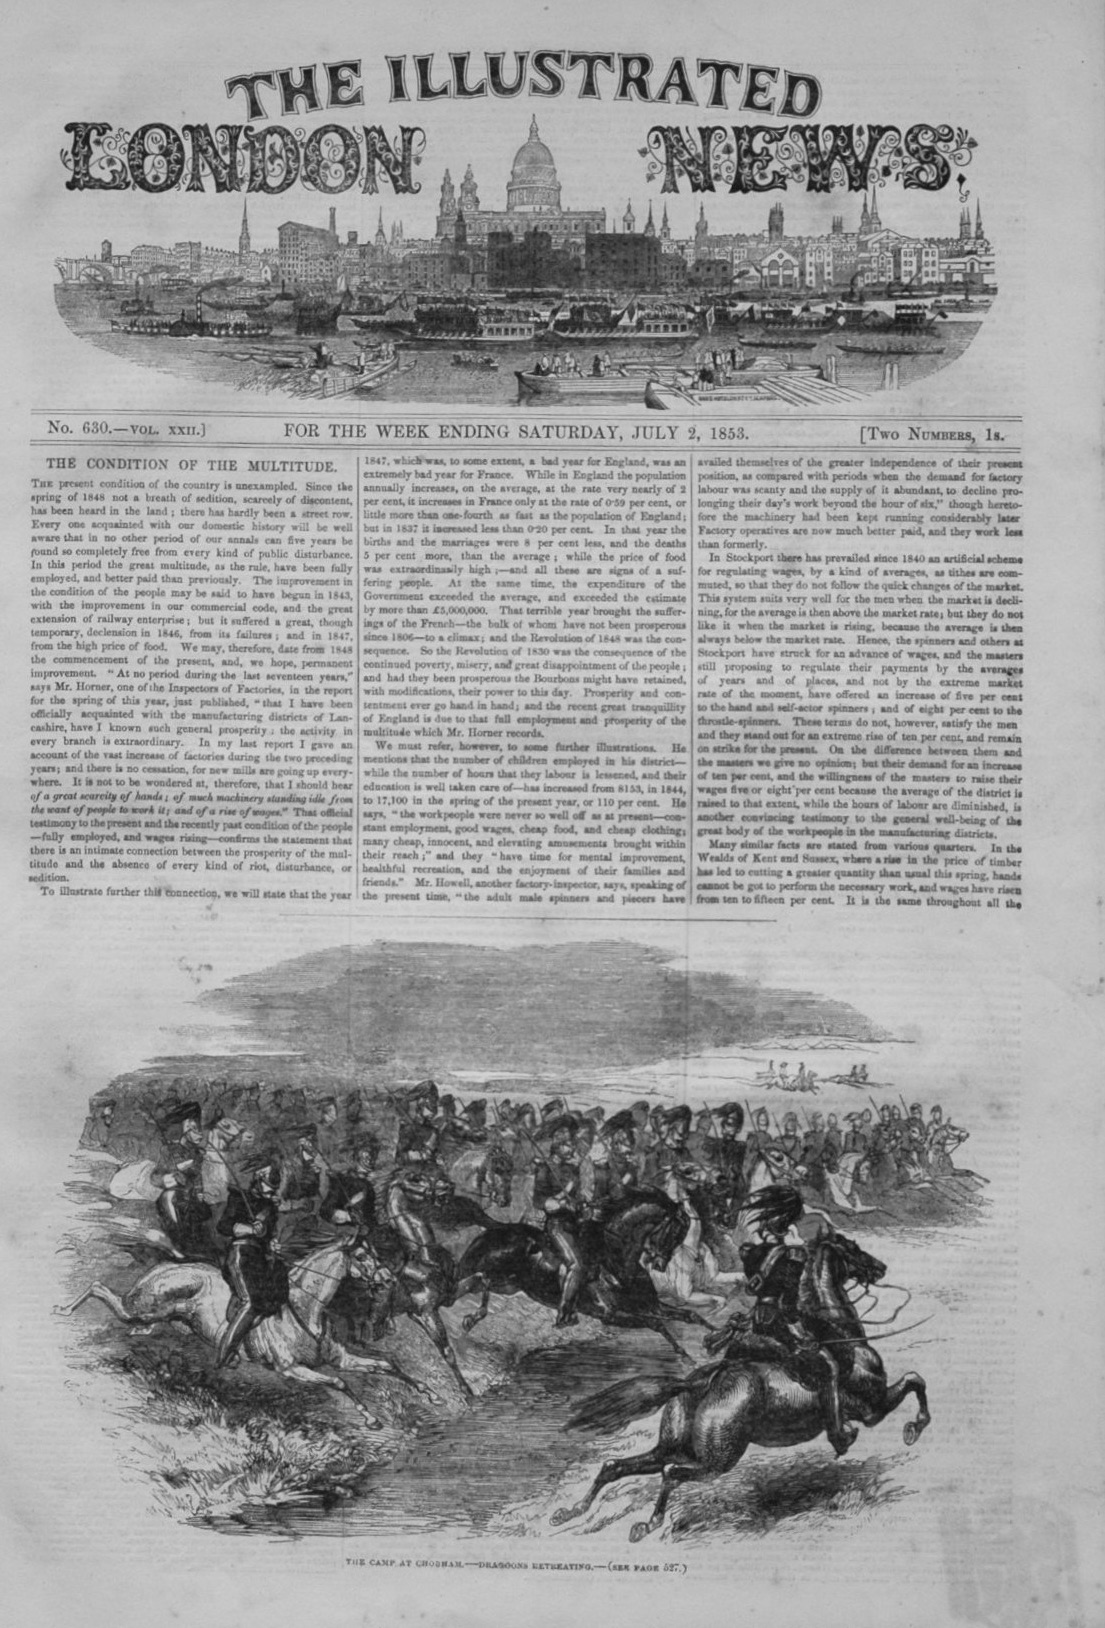 Illustrated London News for July 2nd 1853.